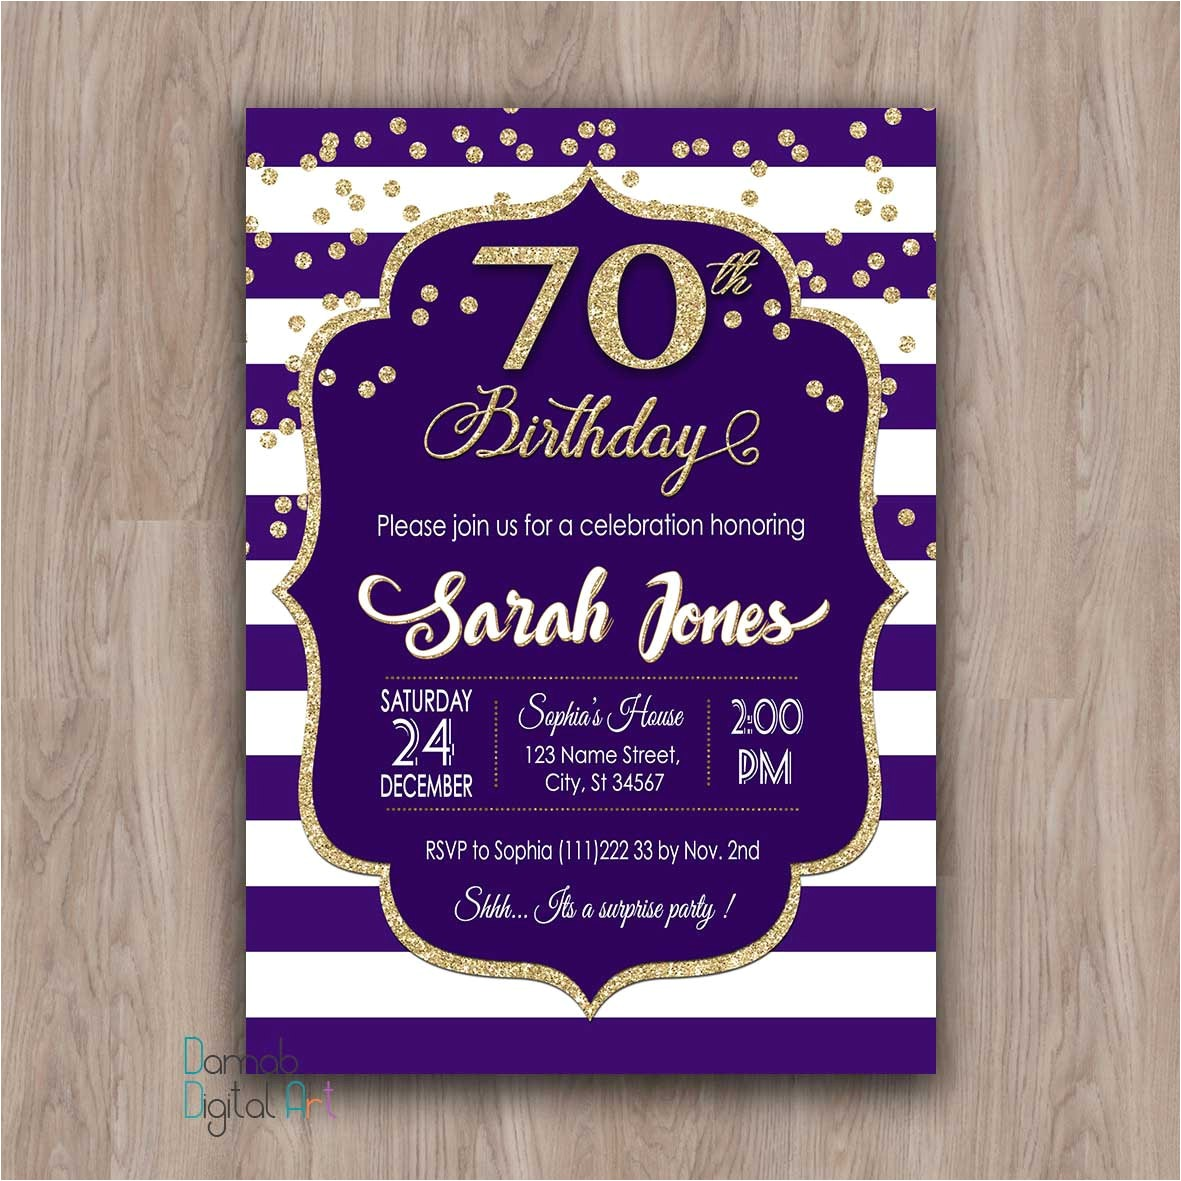 70th birthday invitation 70th birthday